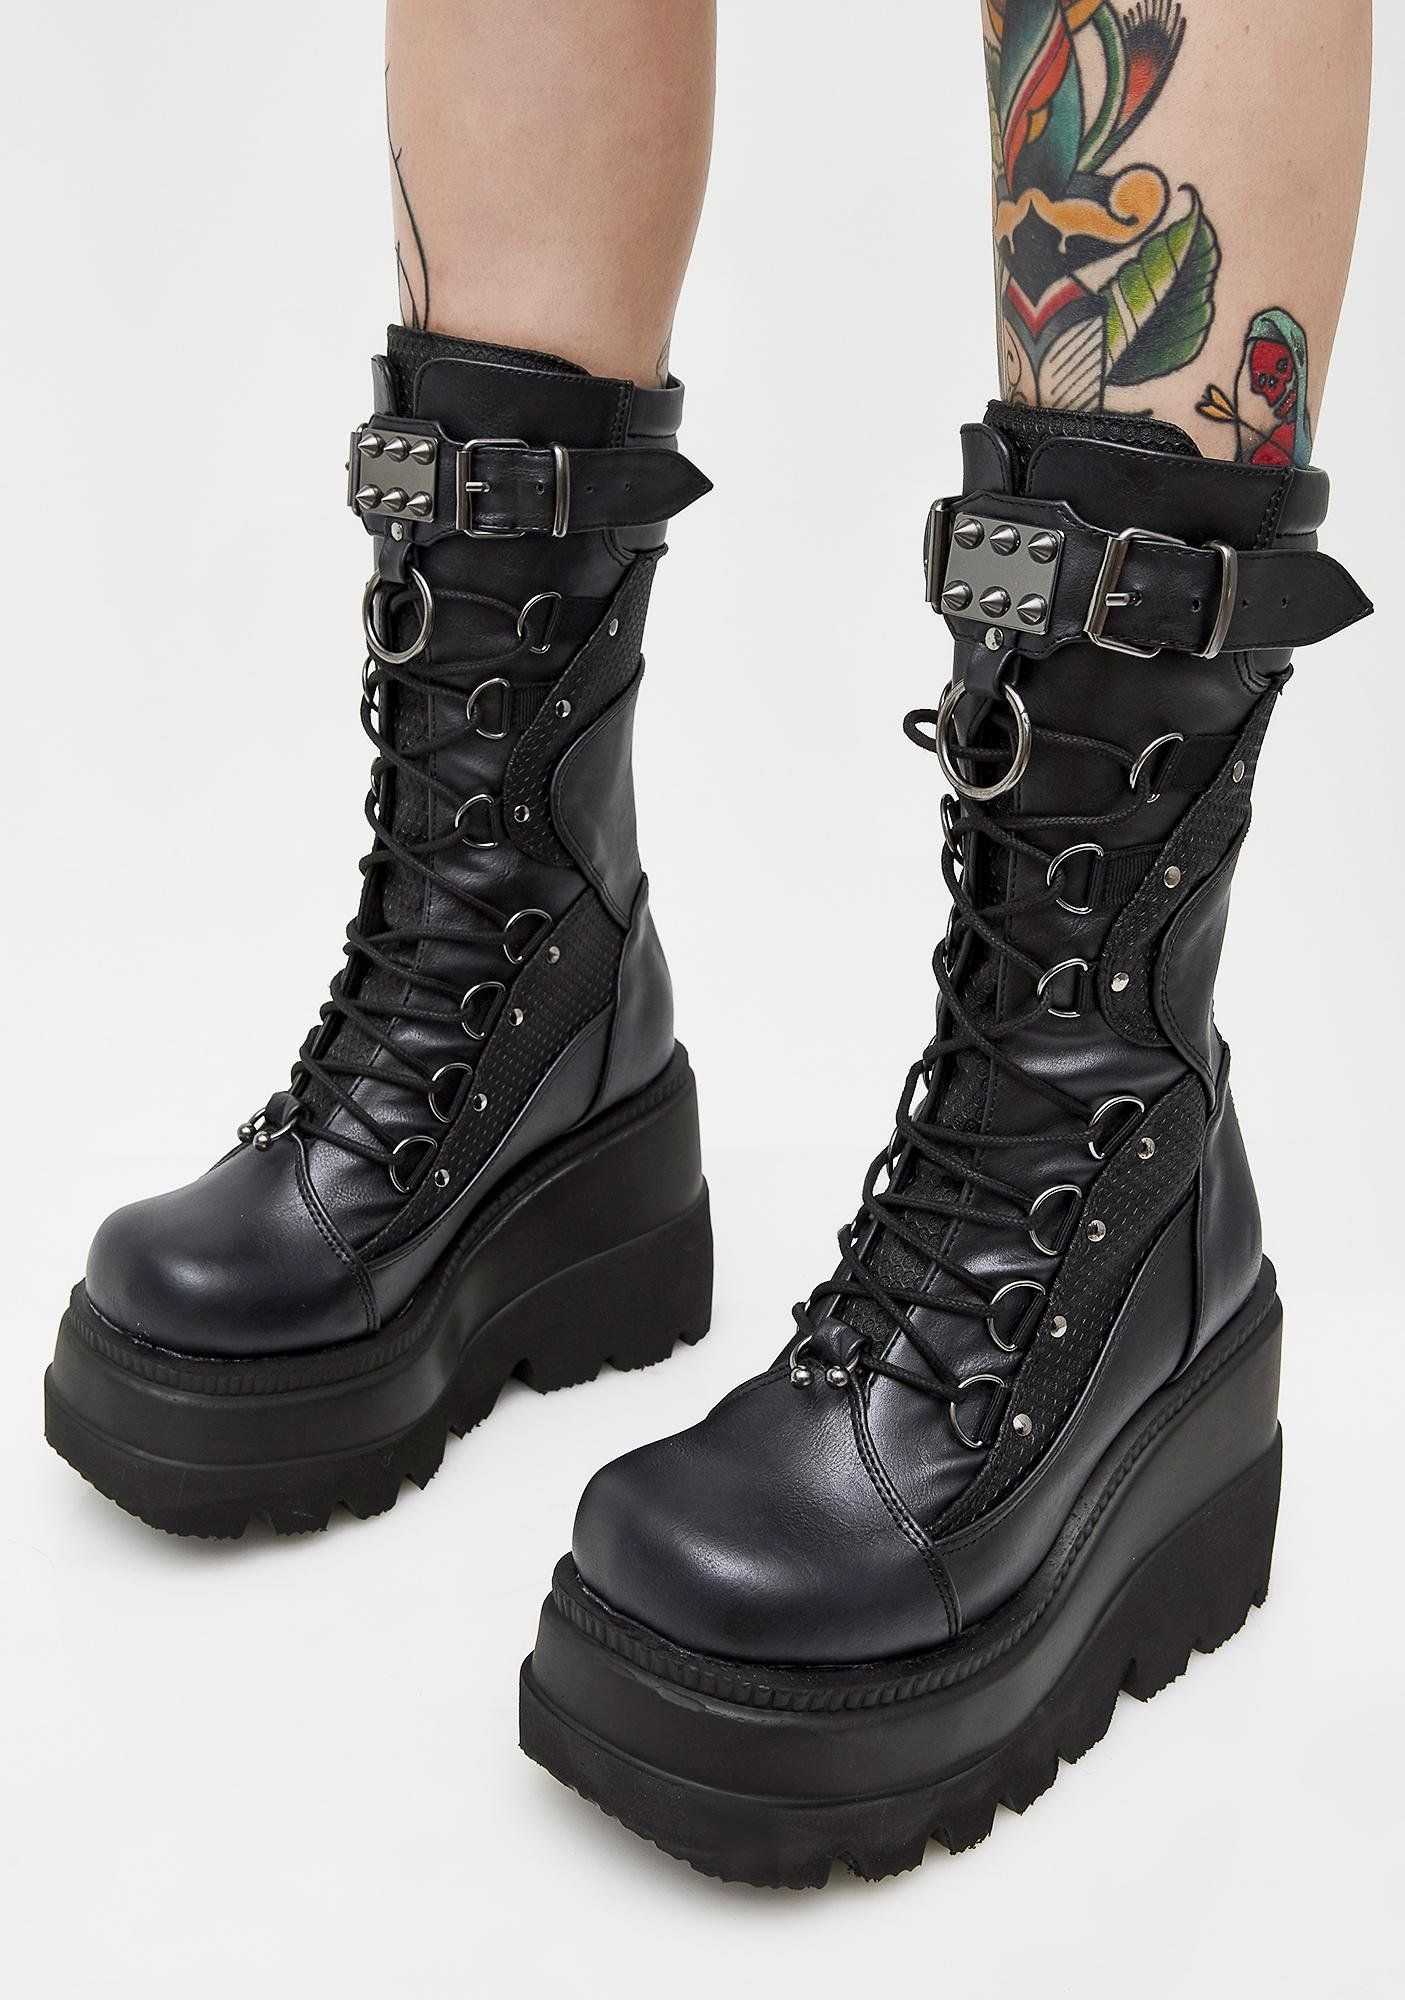 High Rise Shaker Boots in 2020 | Grunge